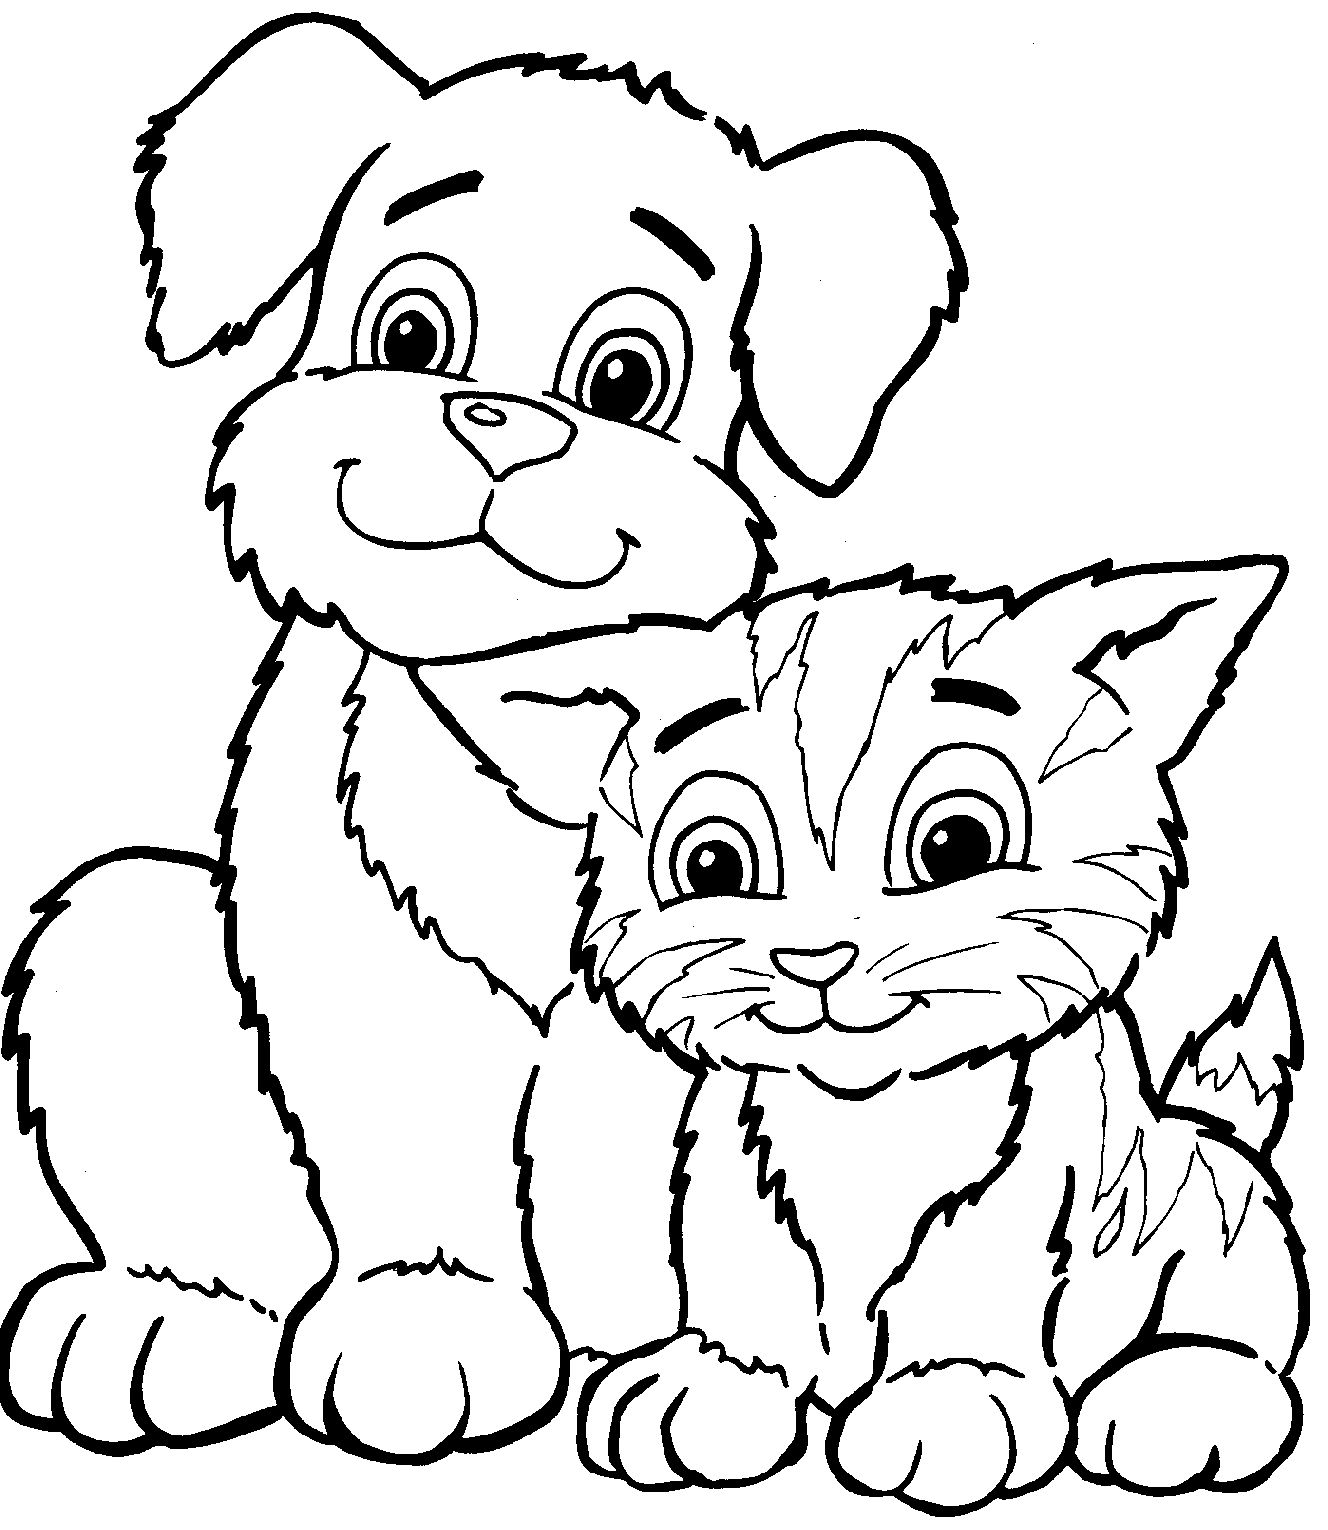 Cats And Dogs Coloring Pages For Kids Free One Of The Dog Cat